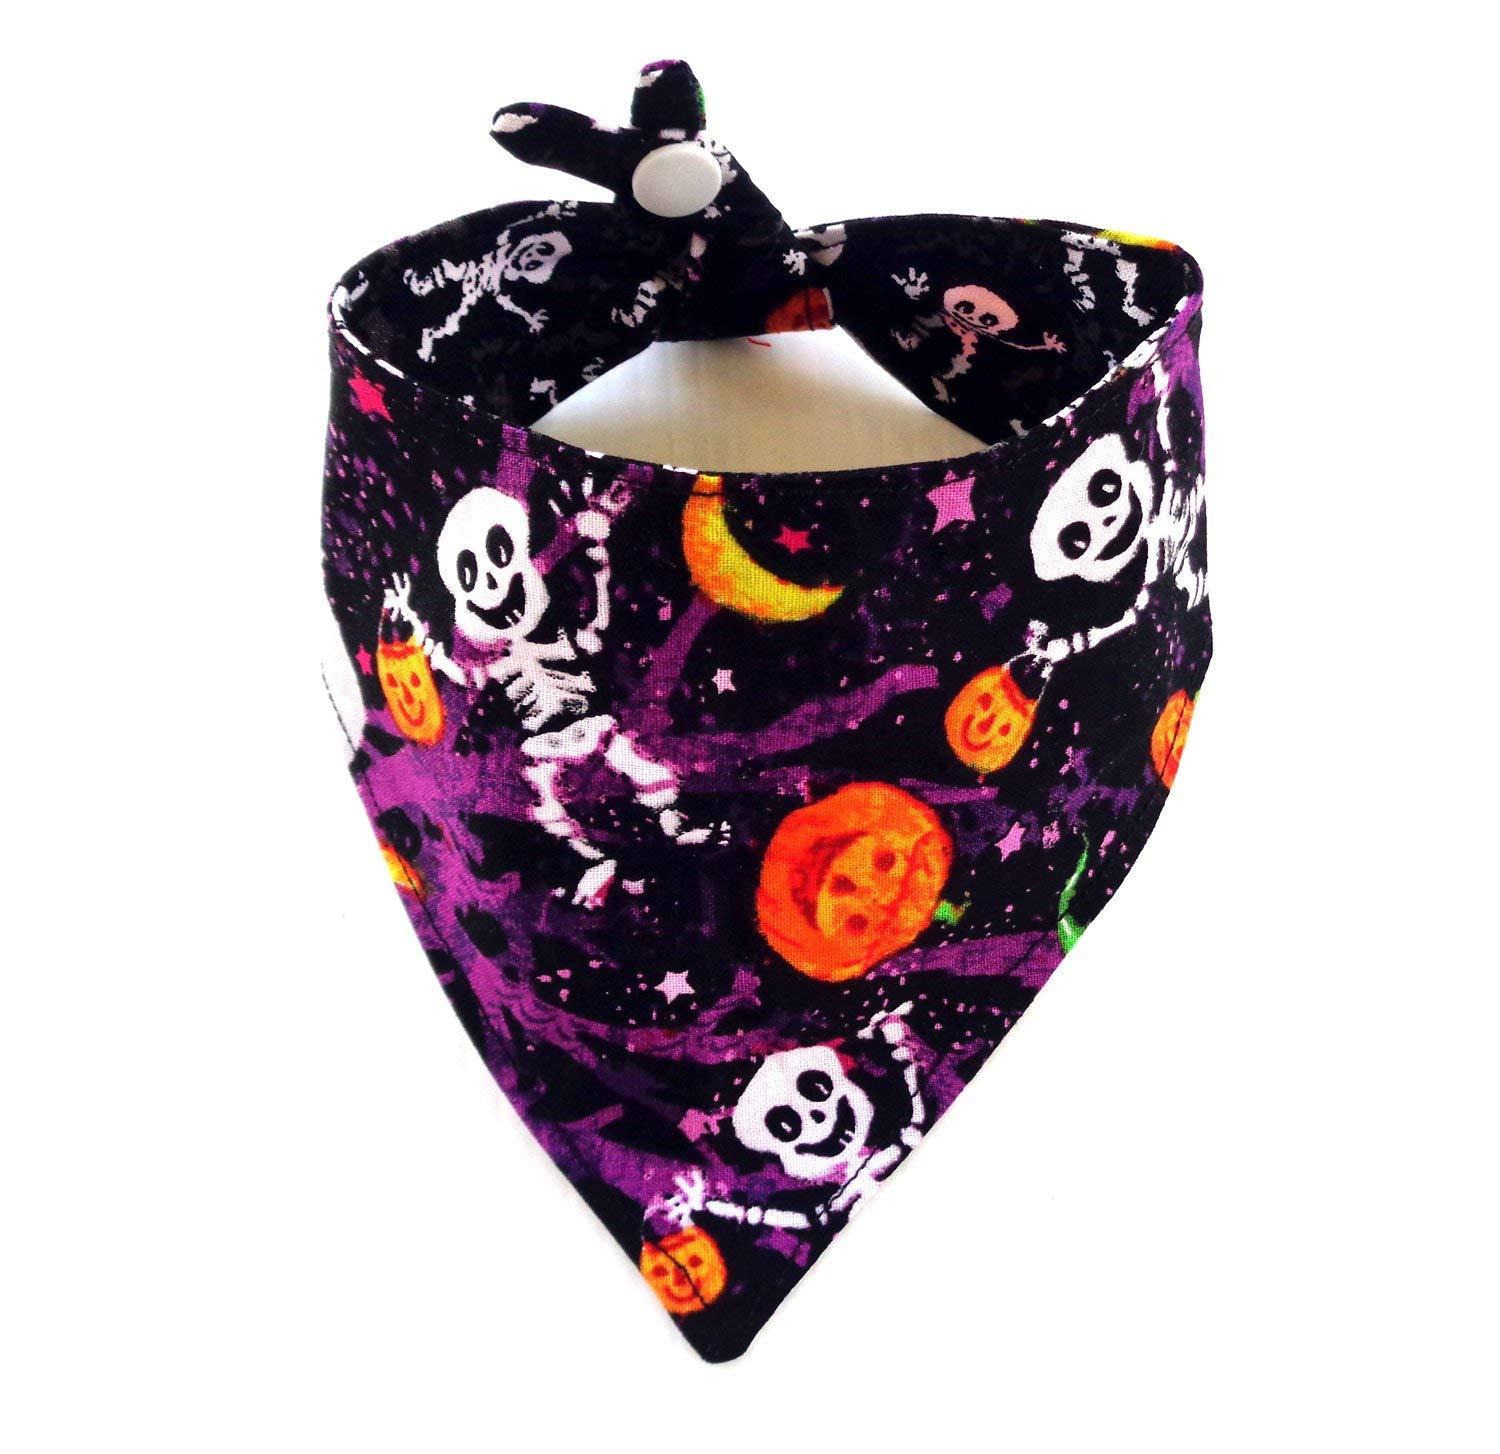 Reversible Adjustable Tie and Snap Closure Halloween dog bandanna, Pumpkins Ghost Skeleton Prints Petwear Neckwear - Small Size